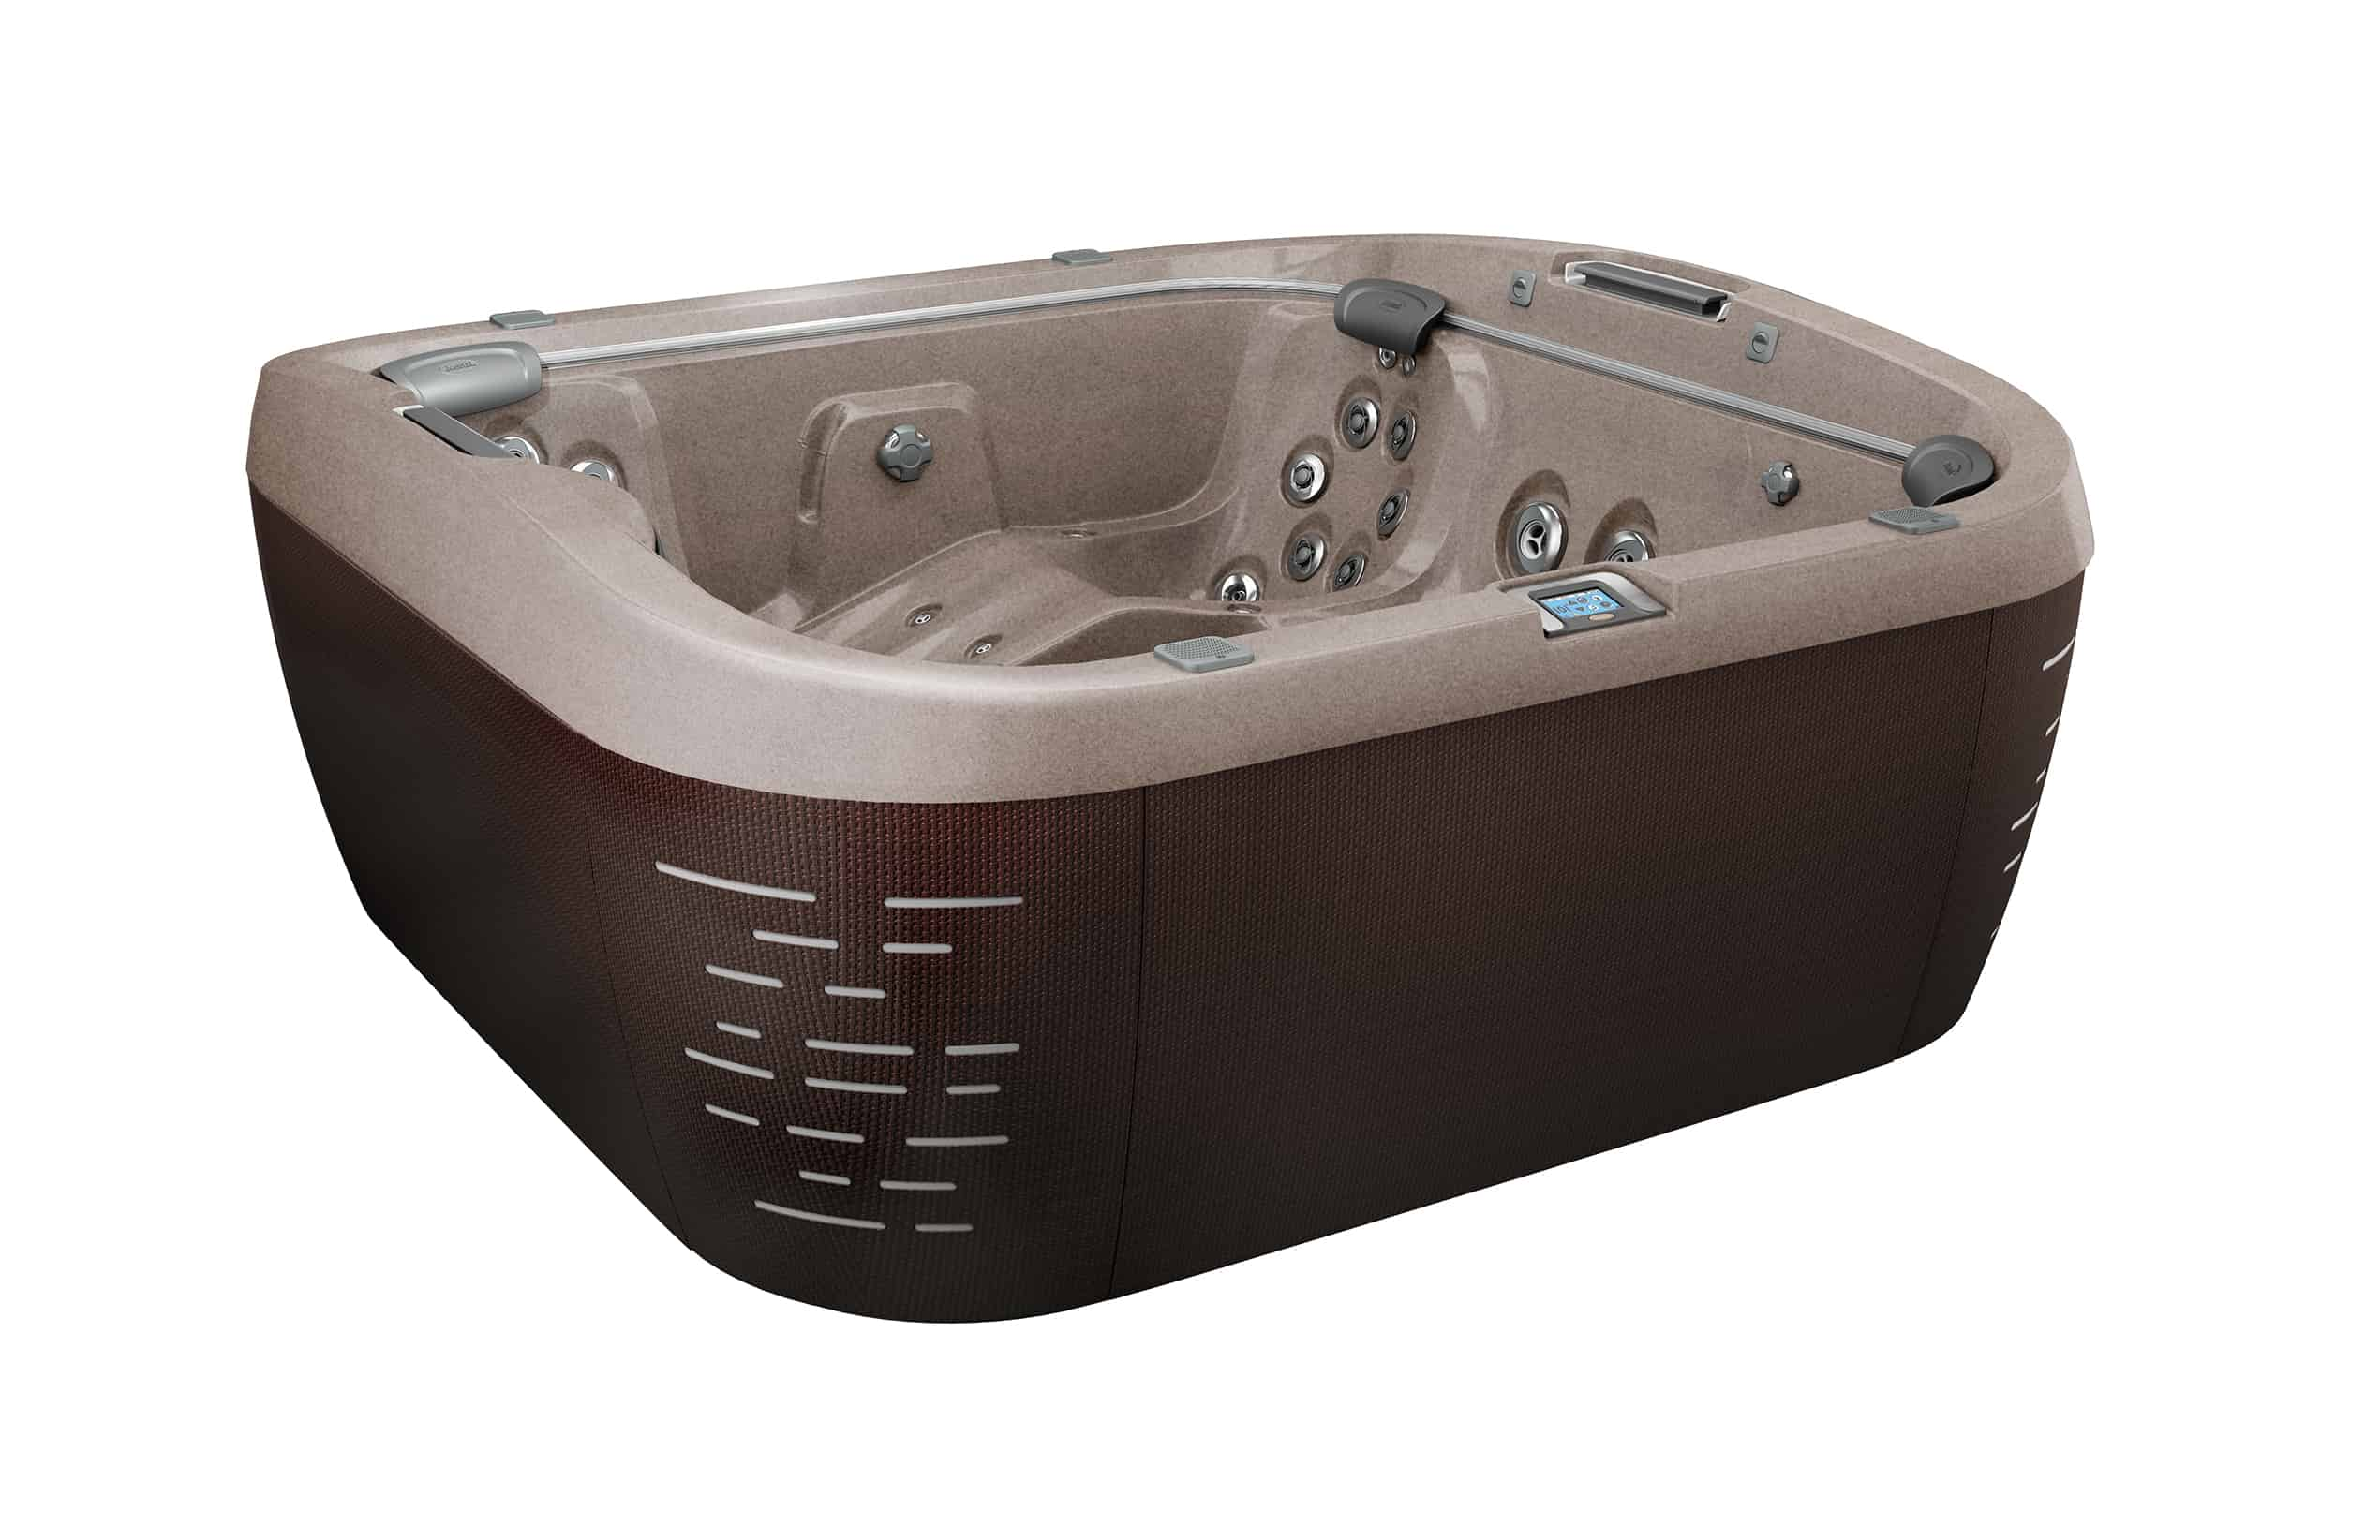 Jacuzzi Brand Pool Pump J 575 5 6 Person Hot Tub Ultra Modern Pool And Patio